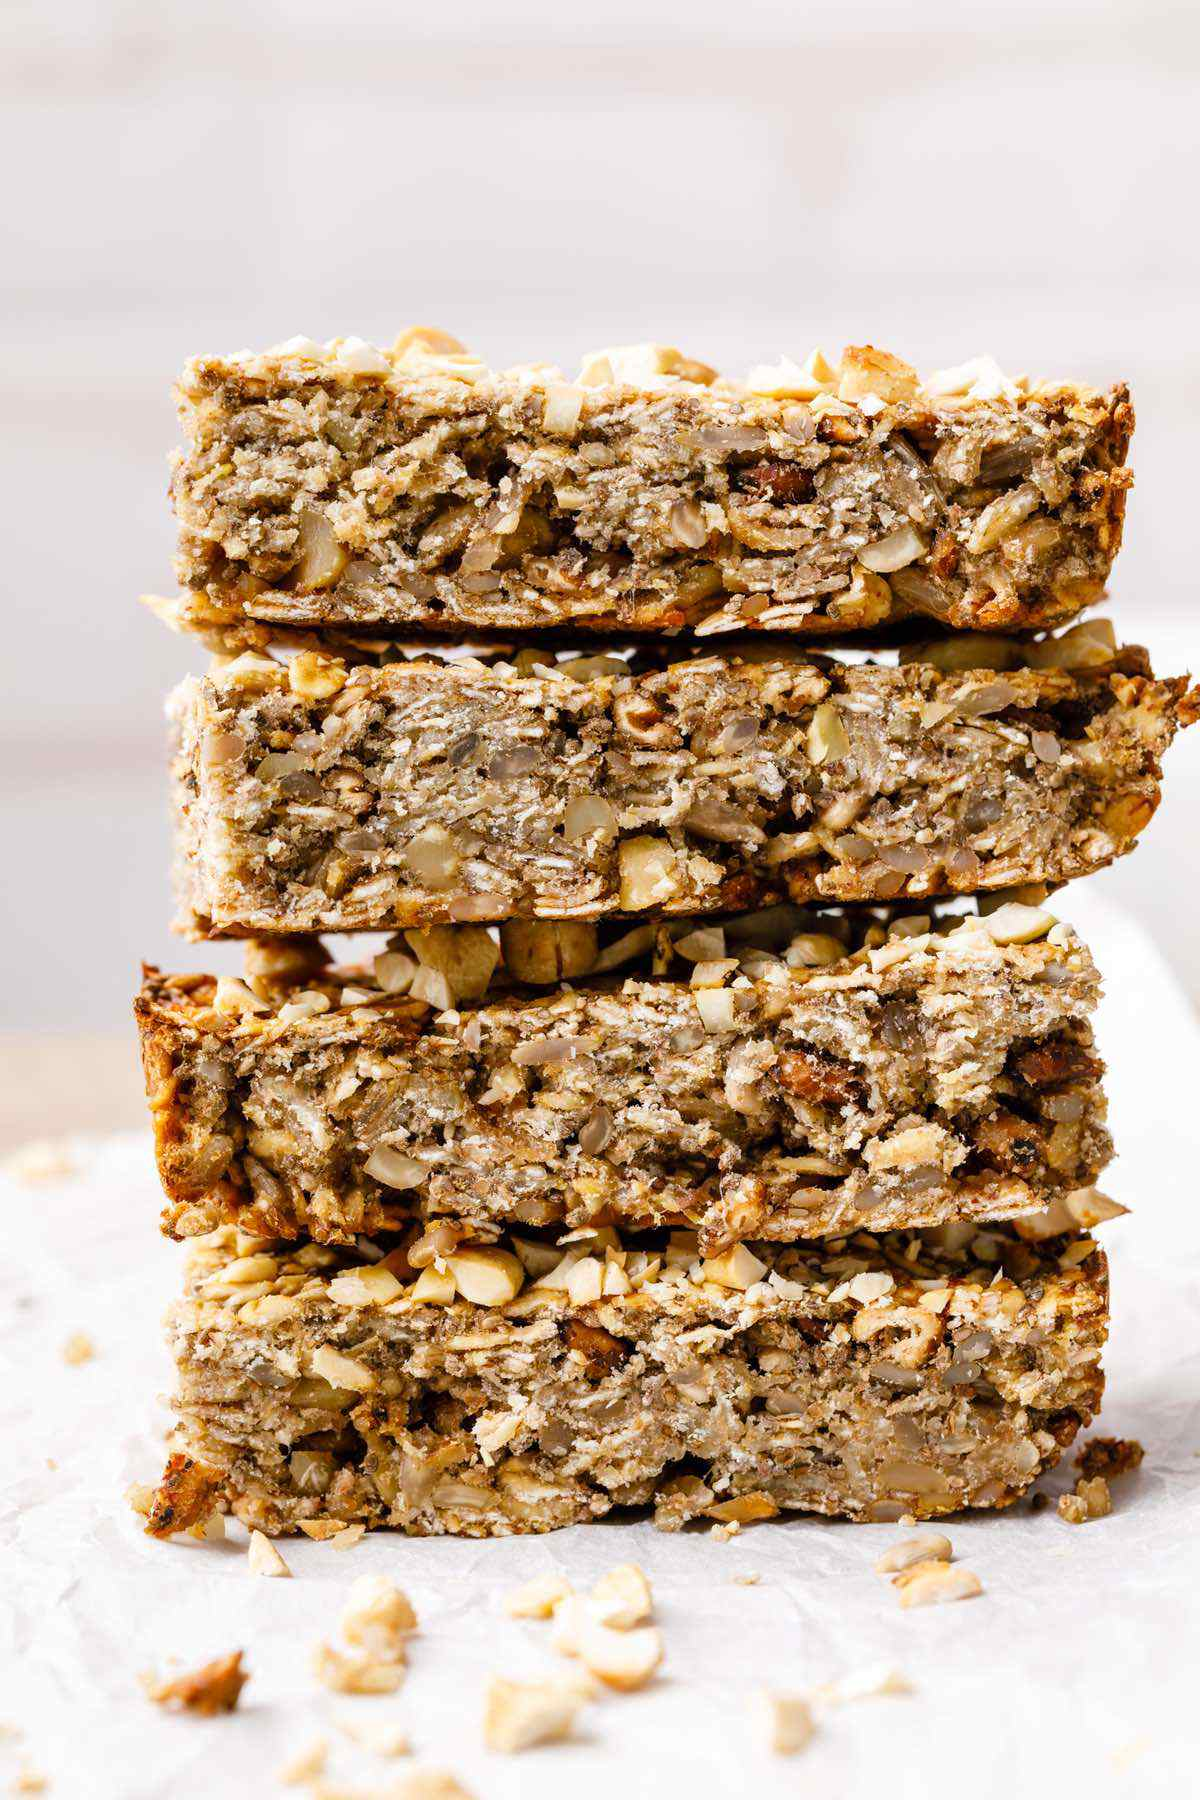 Almond Butter Paleo Breakfast Bars